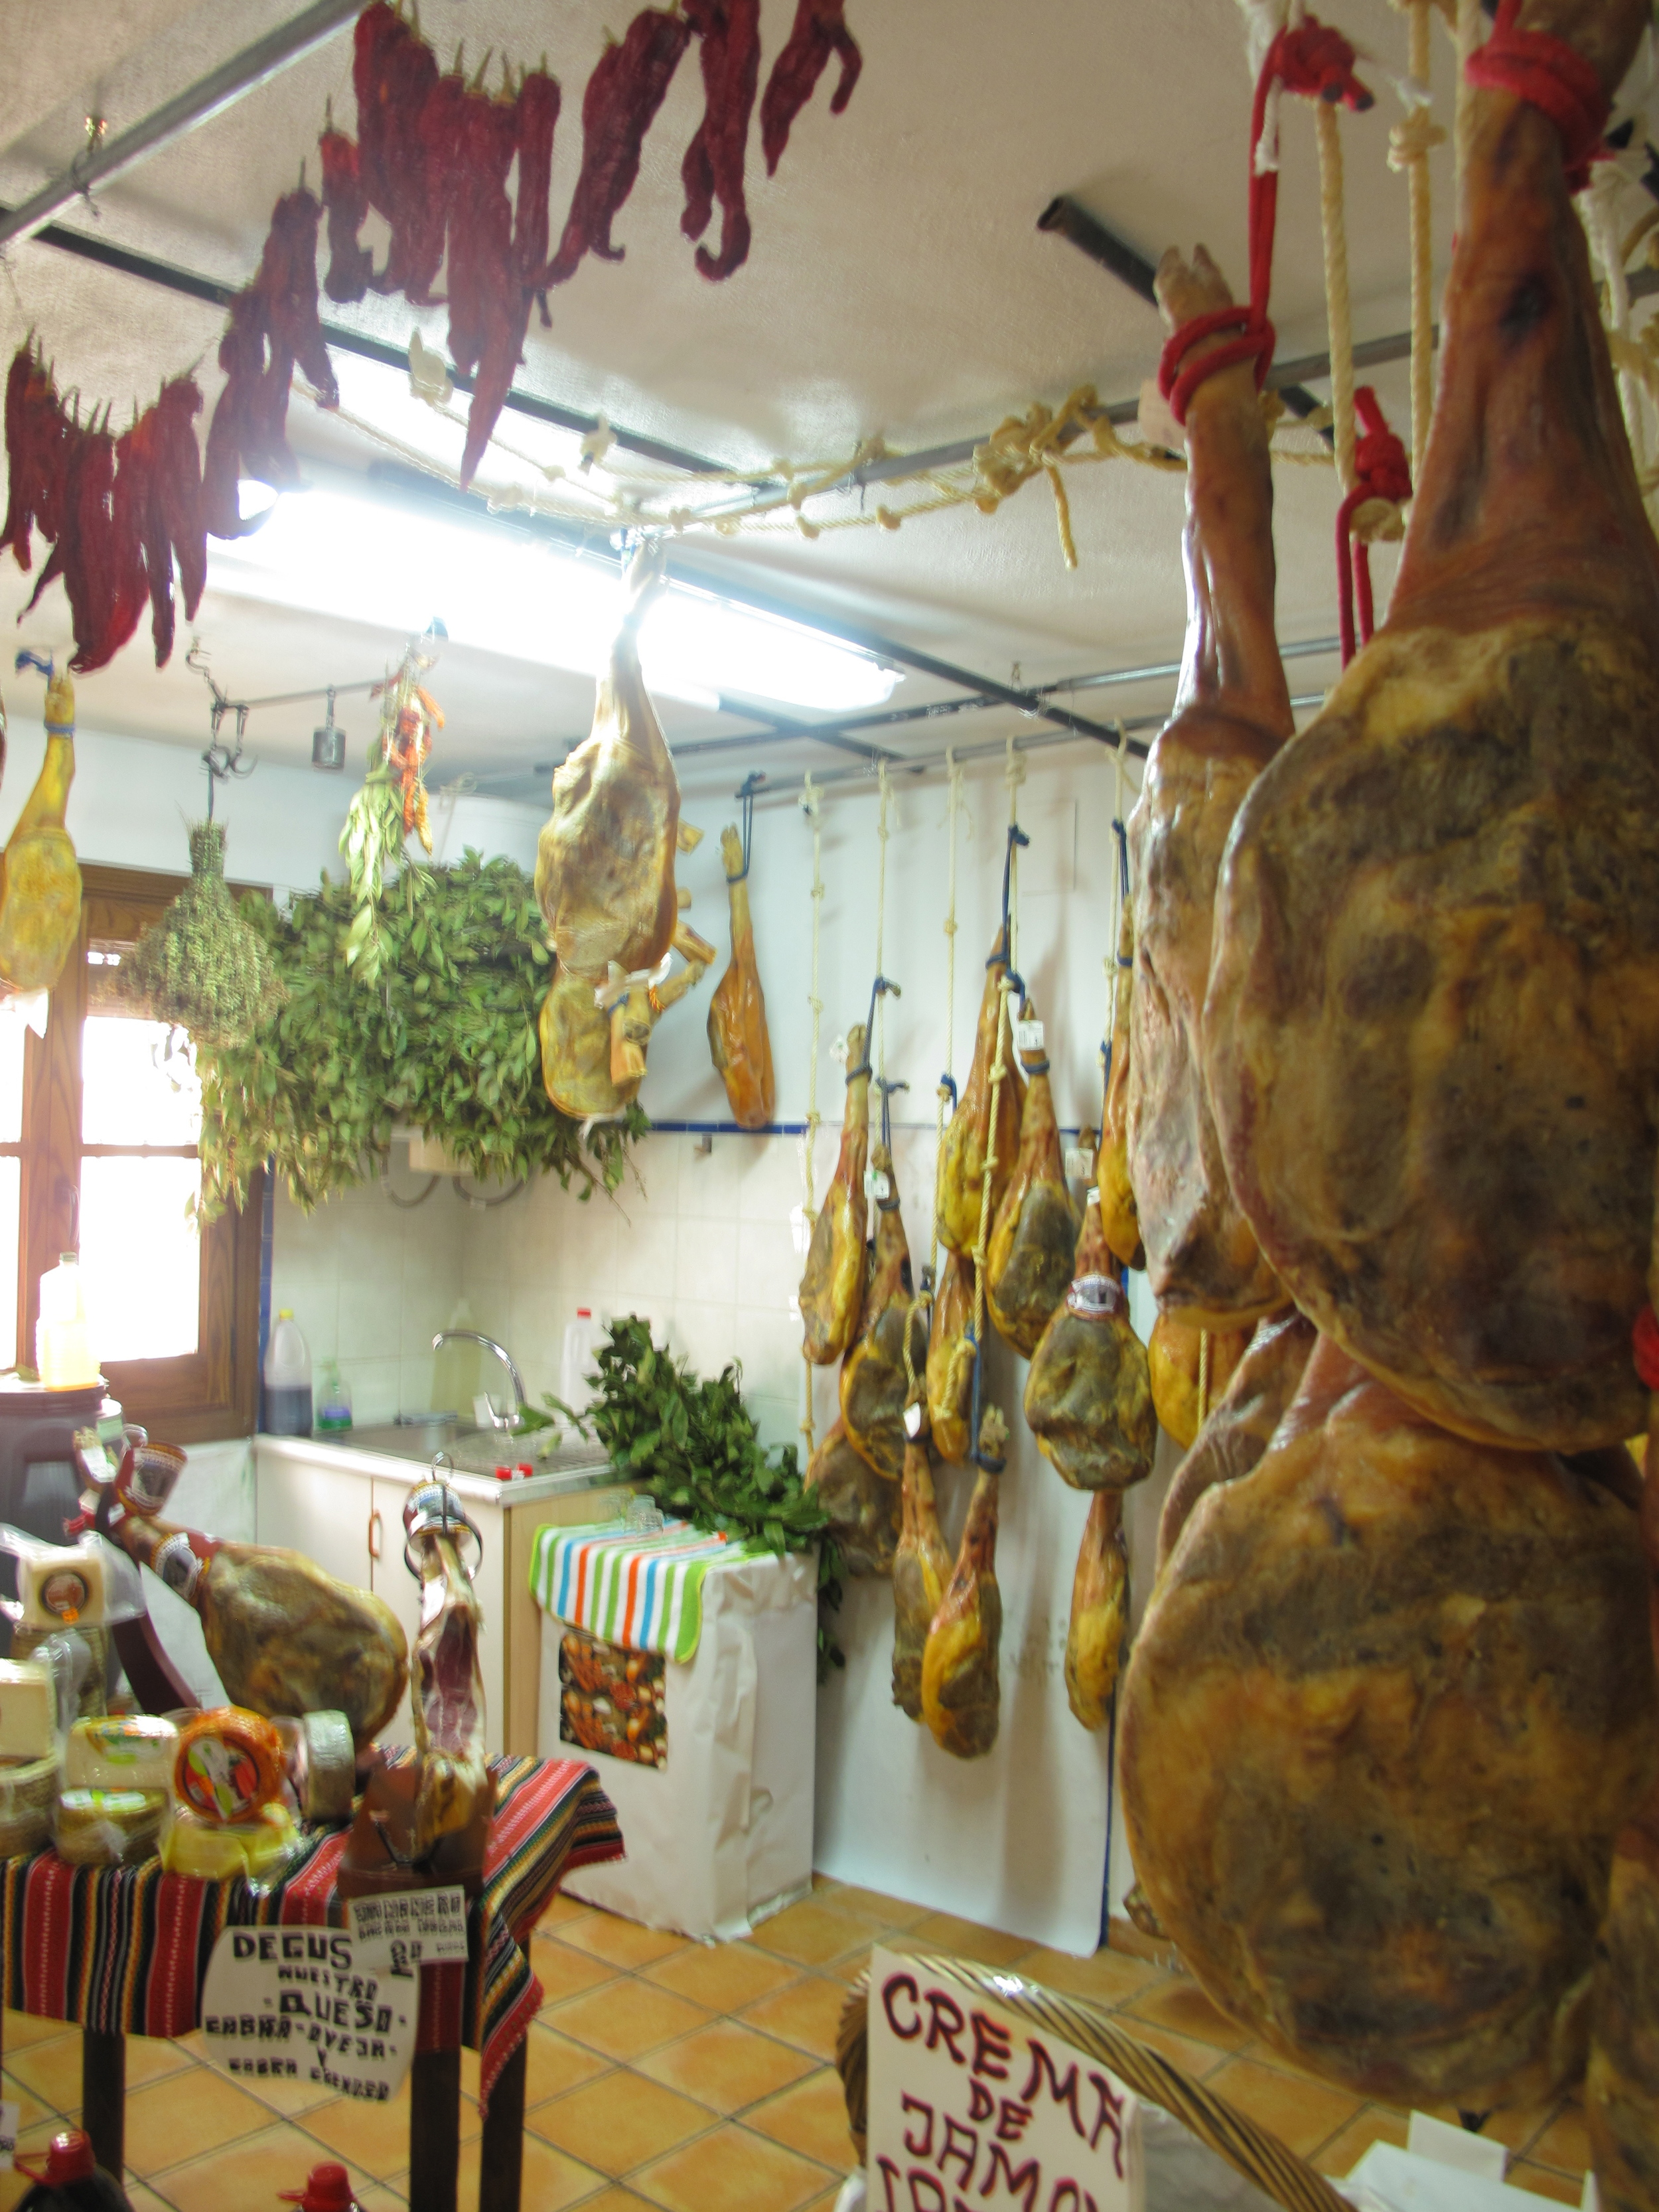 Shop in the Spanish mountains selling jamon, honey, herbs and chillies